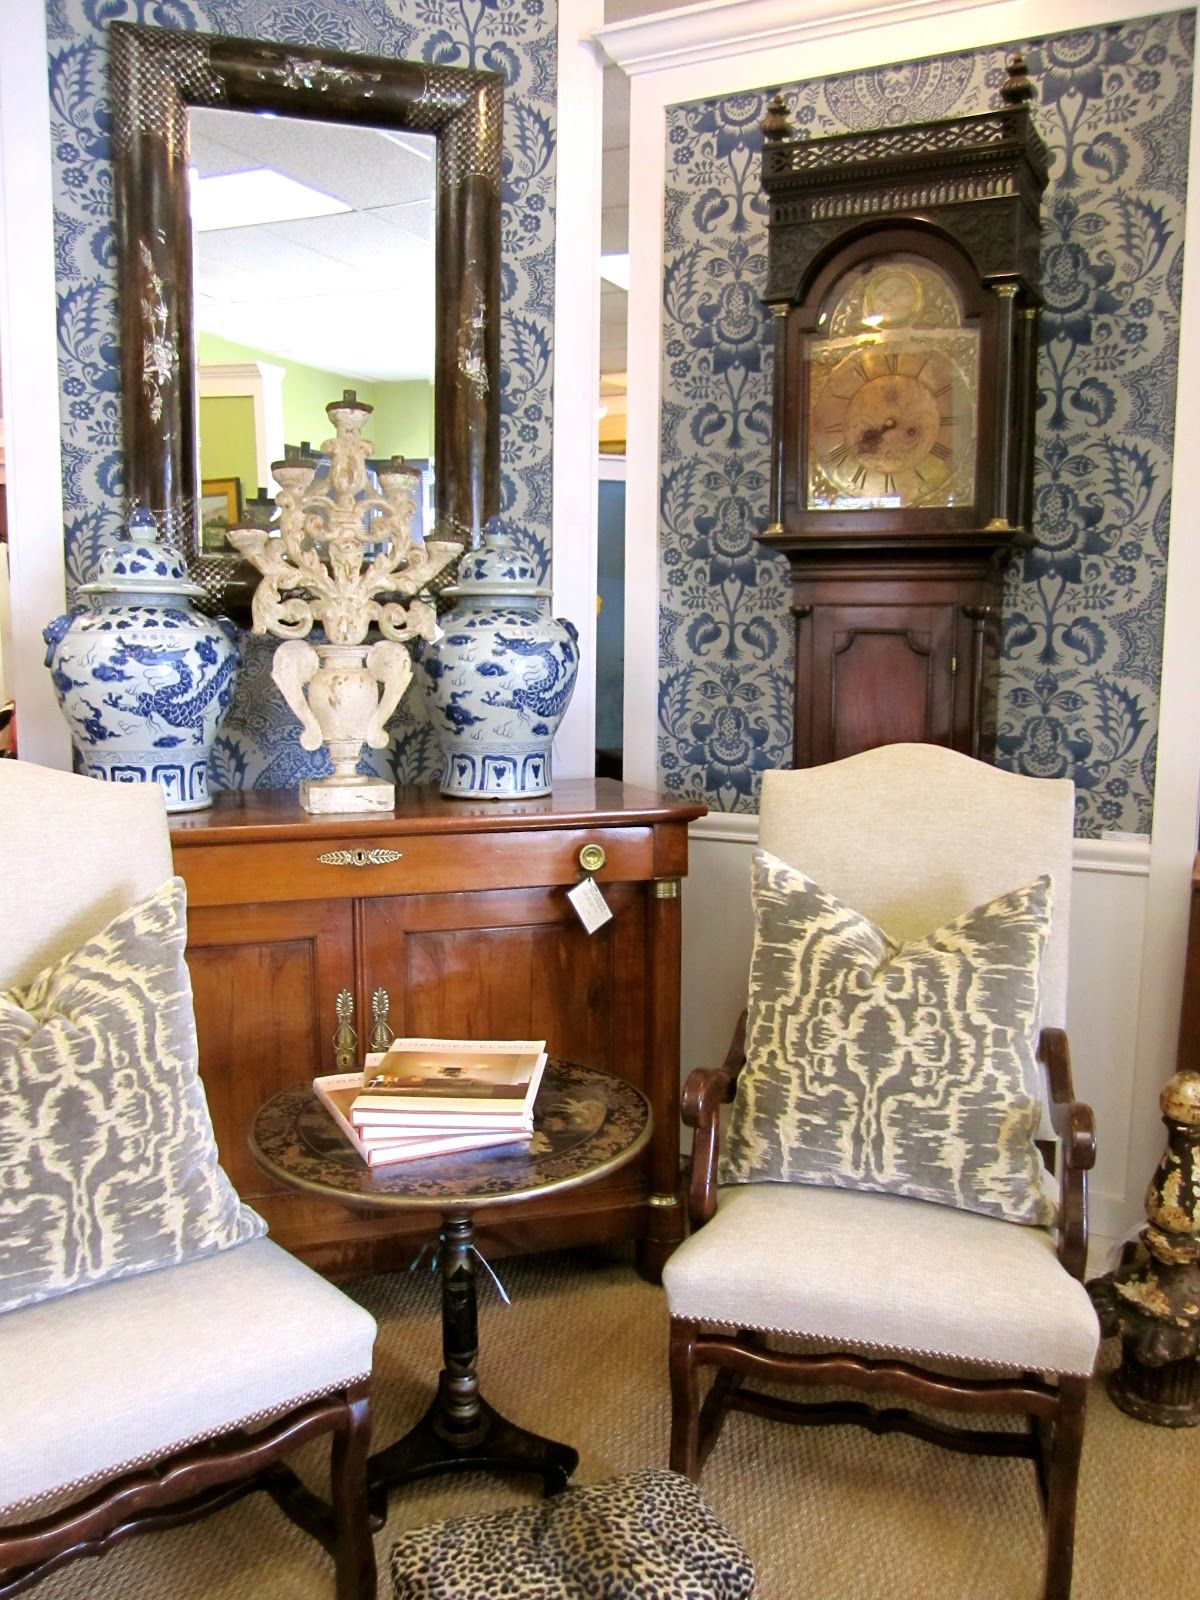 English country home interiors  Colorful California Interiors at Ann Dennis  Inspiration for the